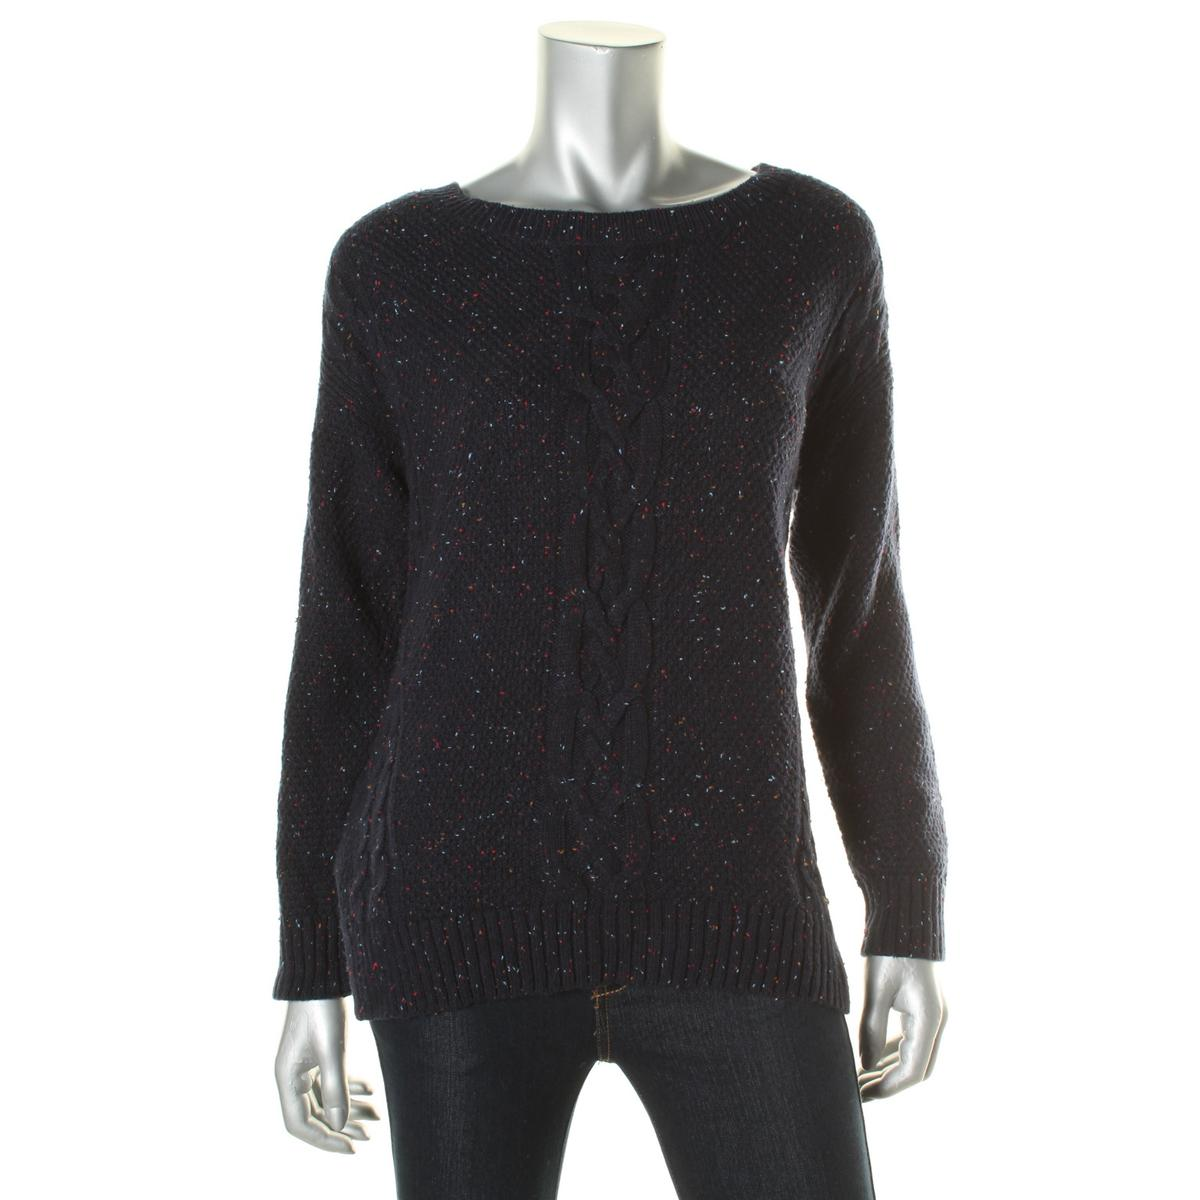 tommy hilfiger 2642 womens cable knit crew neck pullover sweater top bhfo ebay. Black Bedroom Furniture Sets. Home Design Ideas